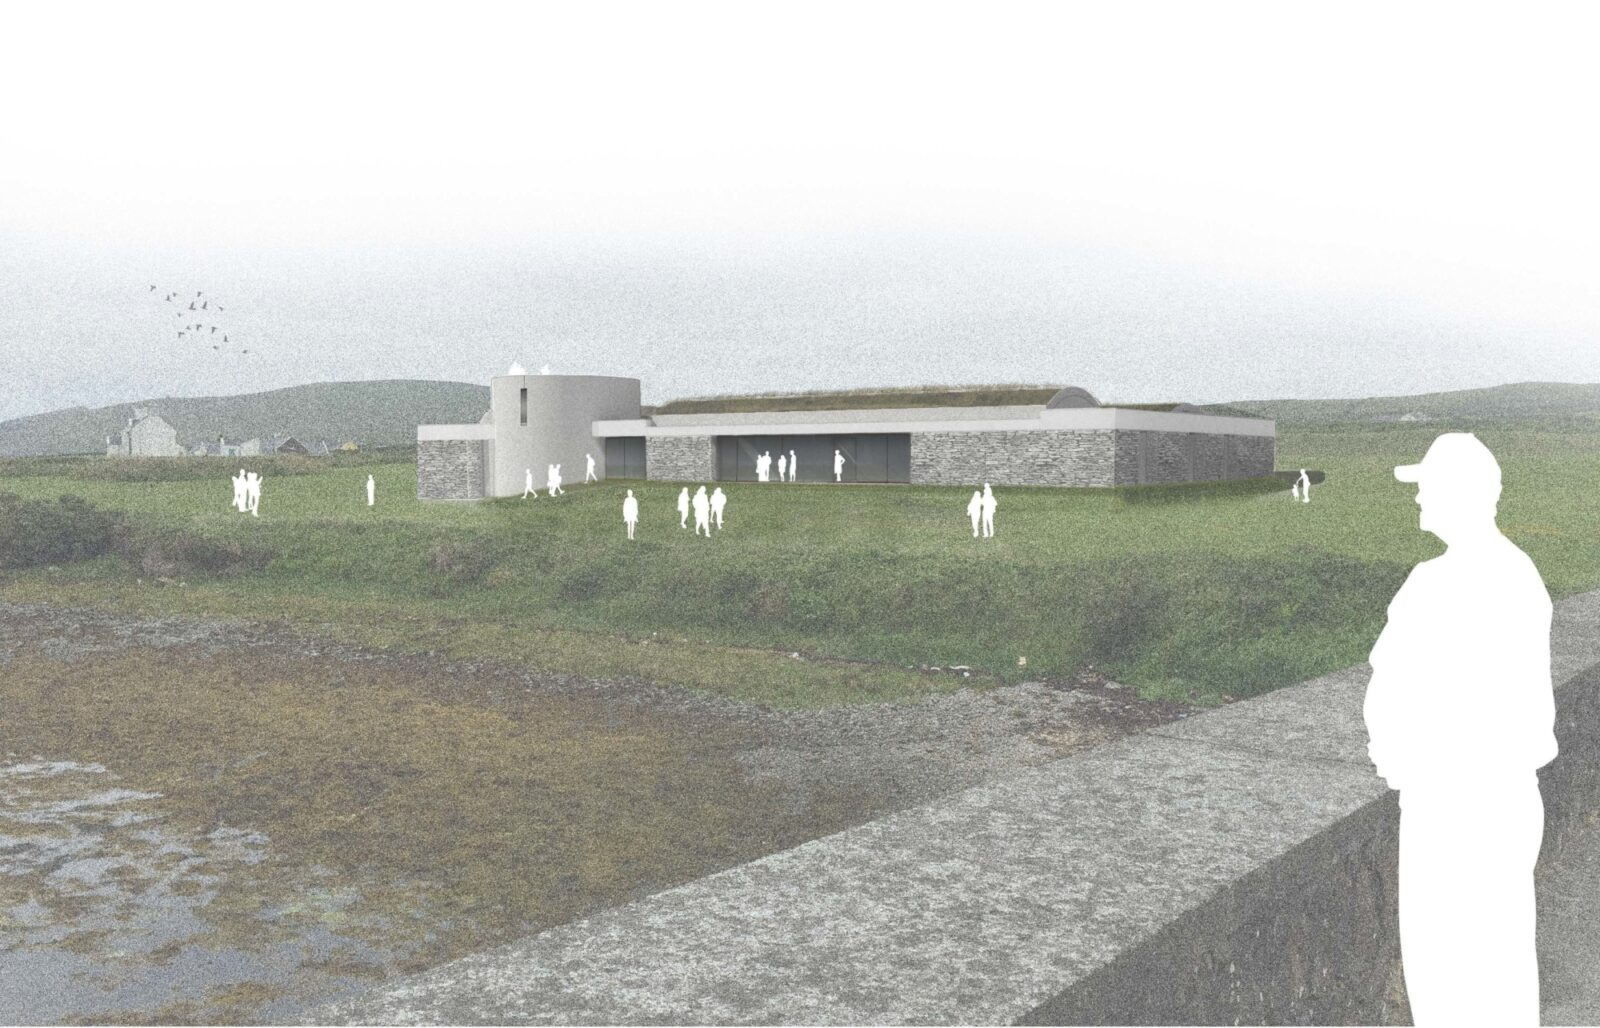 Proposed view from Northeast